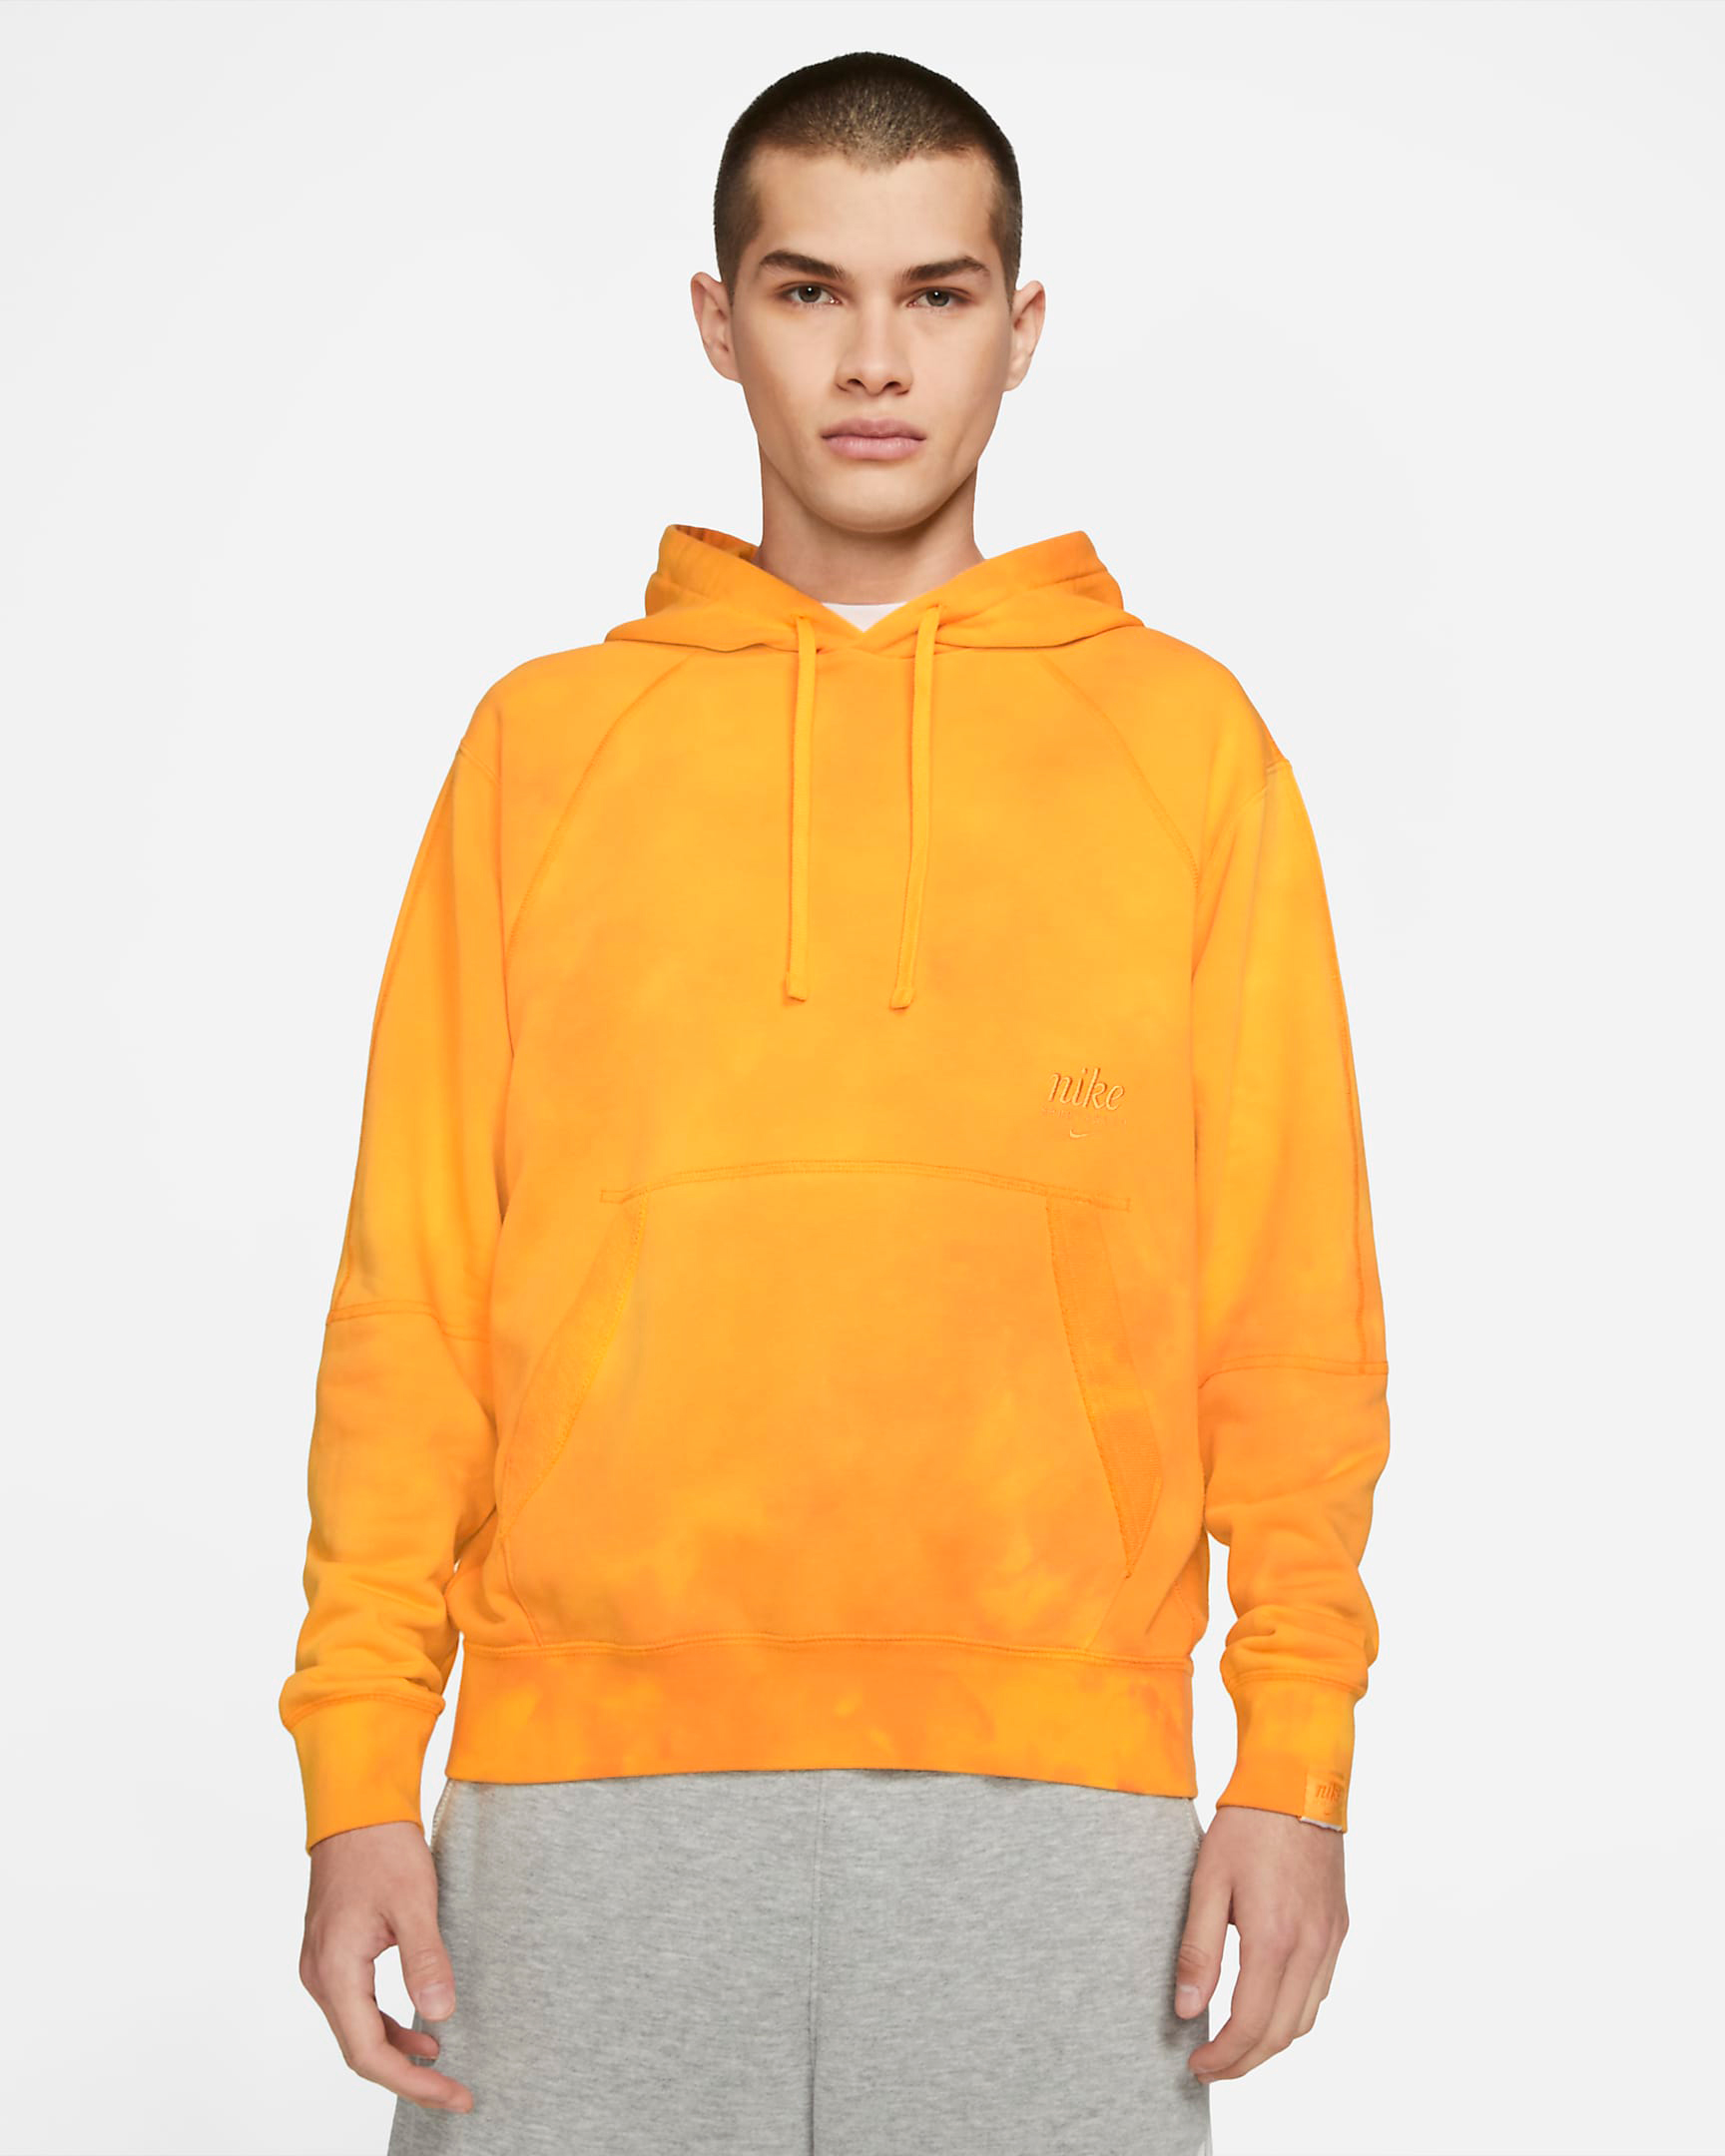 nike-university-gold-tie-dye-club-hoodie-2